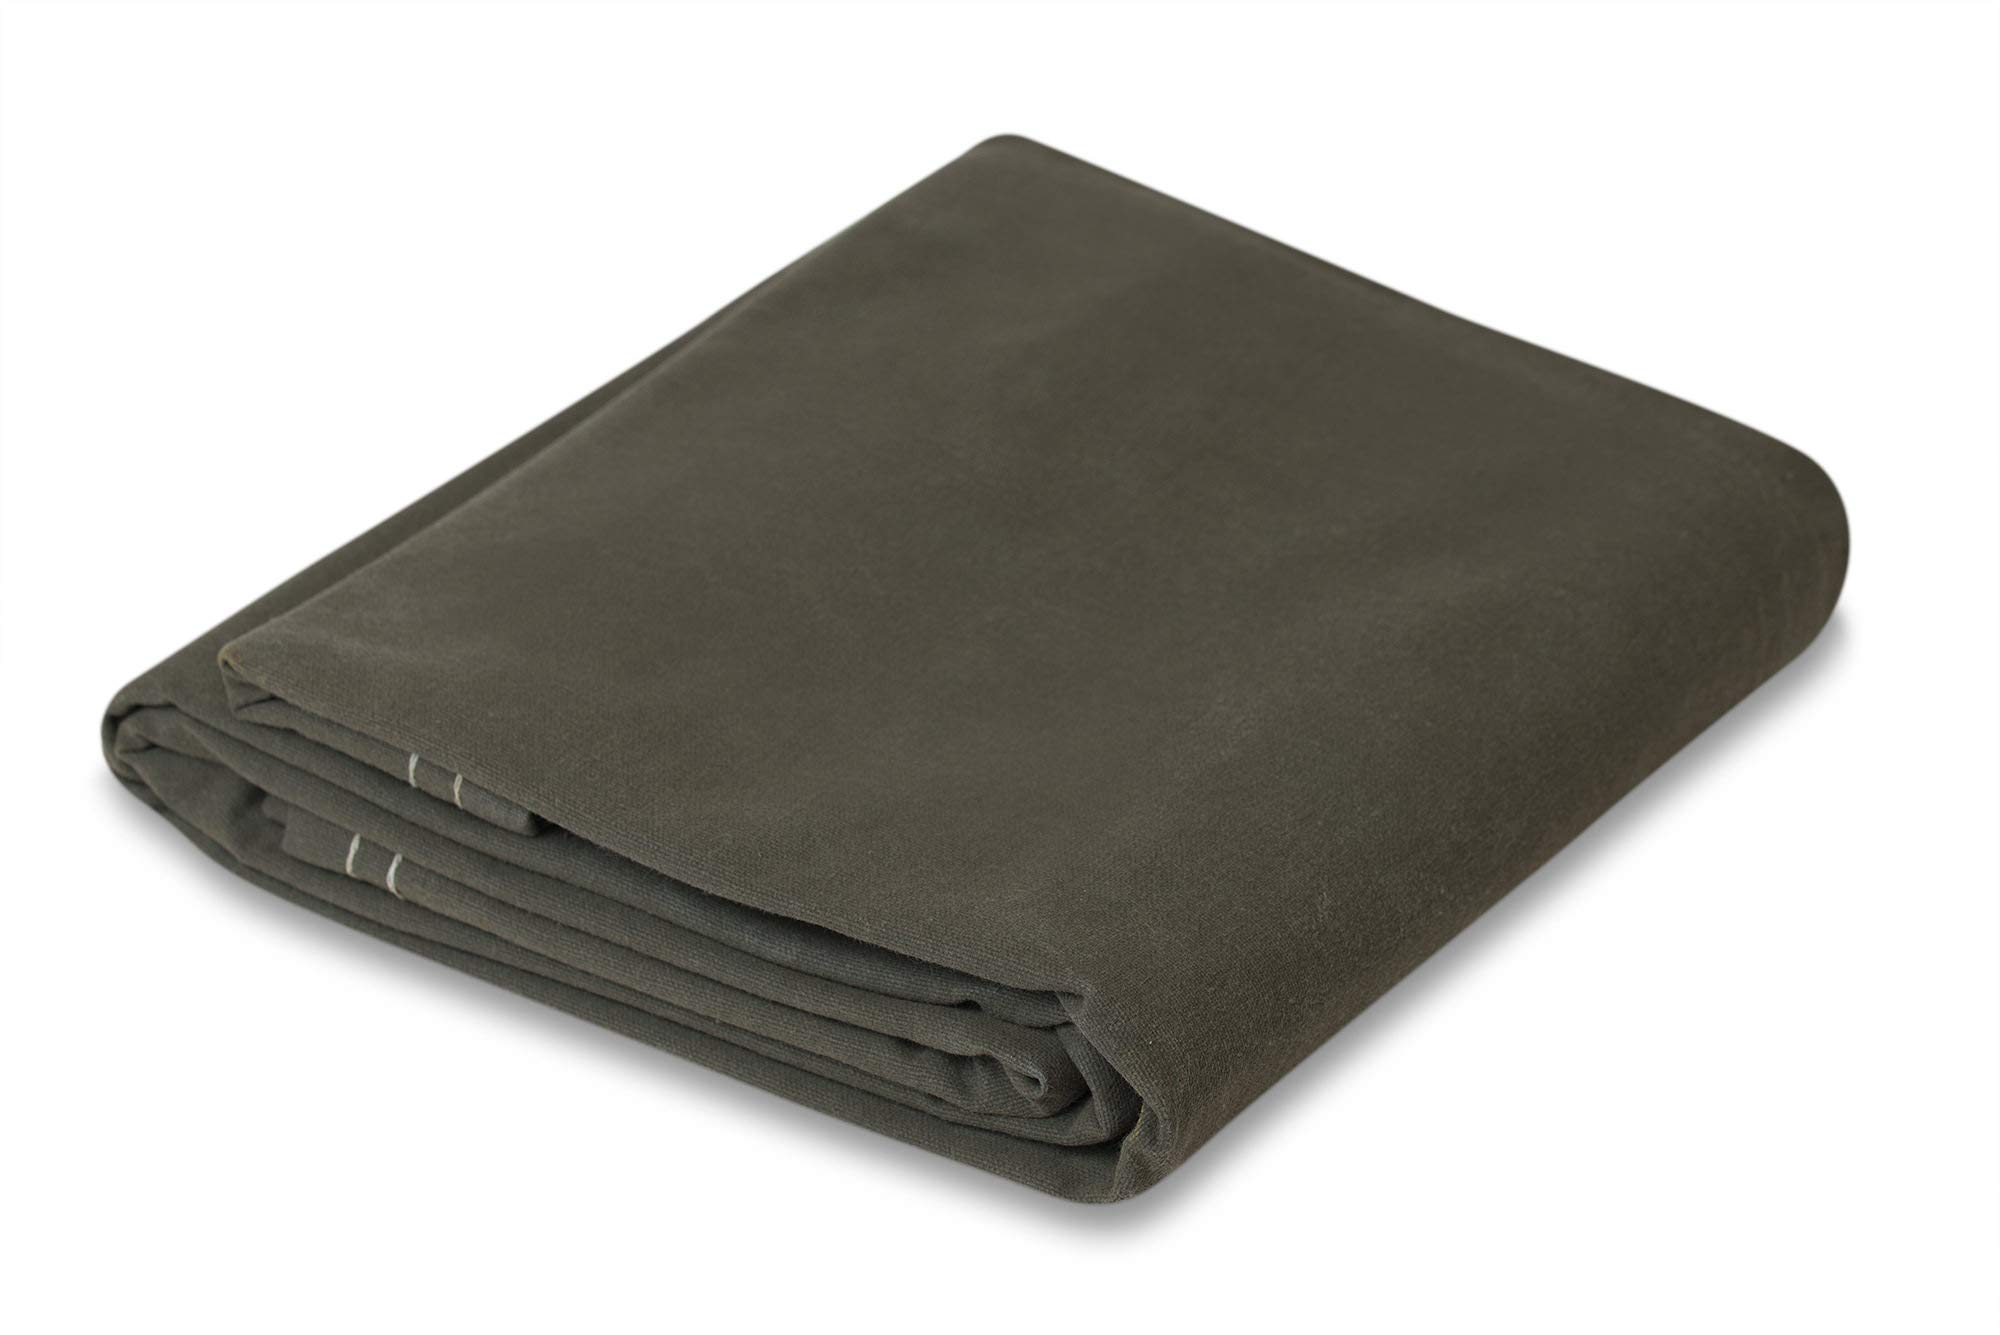 6' x 8' Olive Drab 21 oz Canvas Tarpaulin by CCS CHICAGO CANVAS & SUPPLY